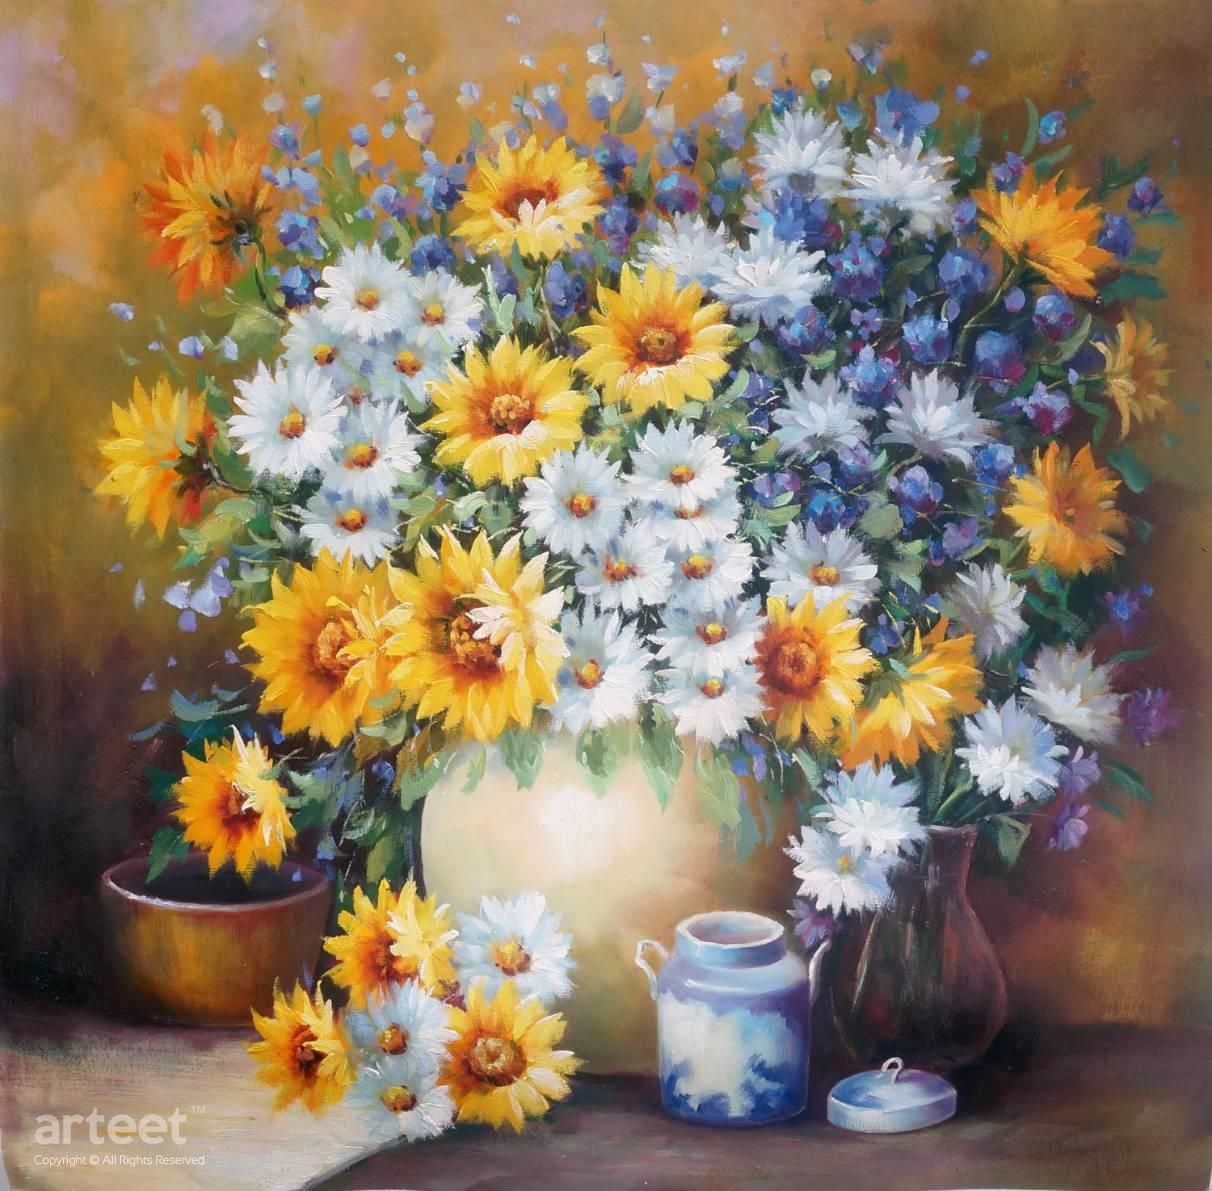 Bouquet of daisies paintings plant art and flowers bouquet of daisies art paintings for sale arteet izmirmasajfo Images